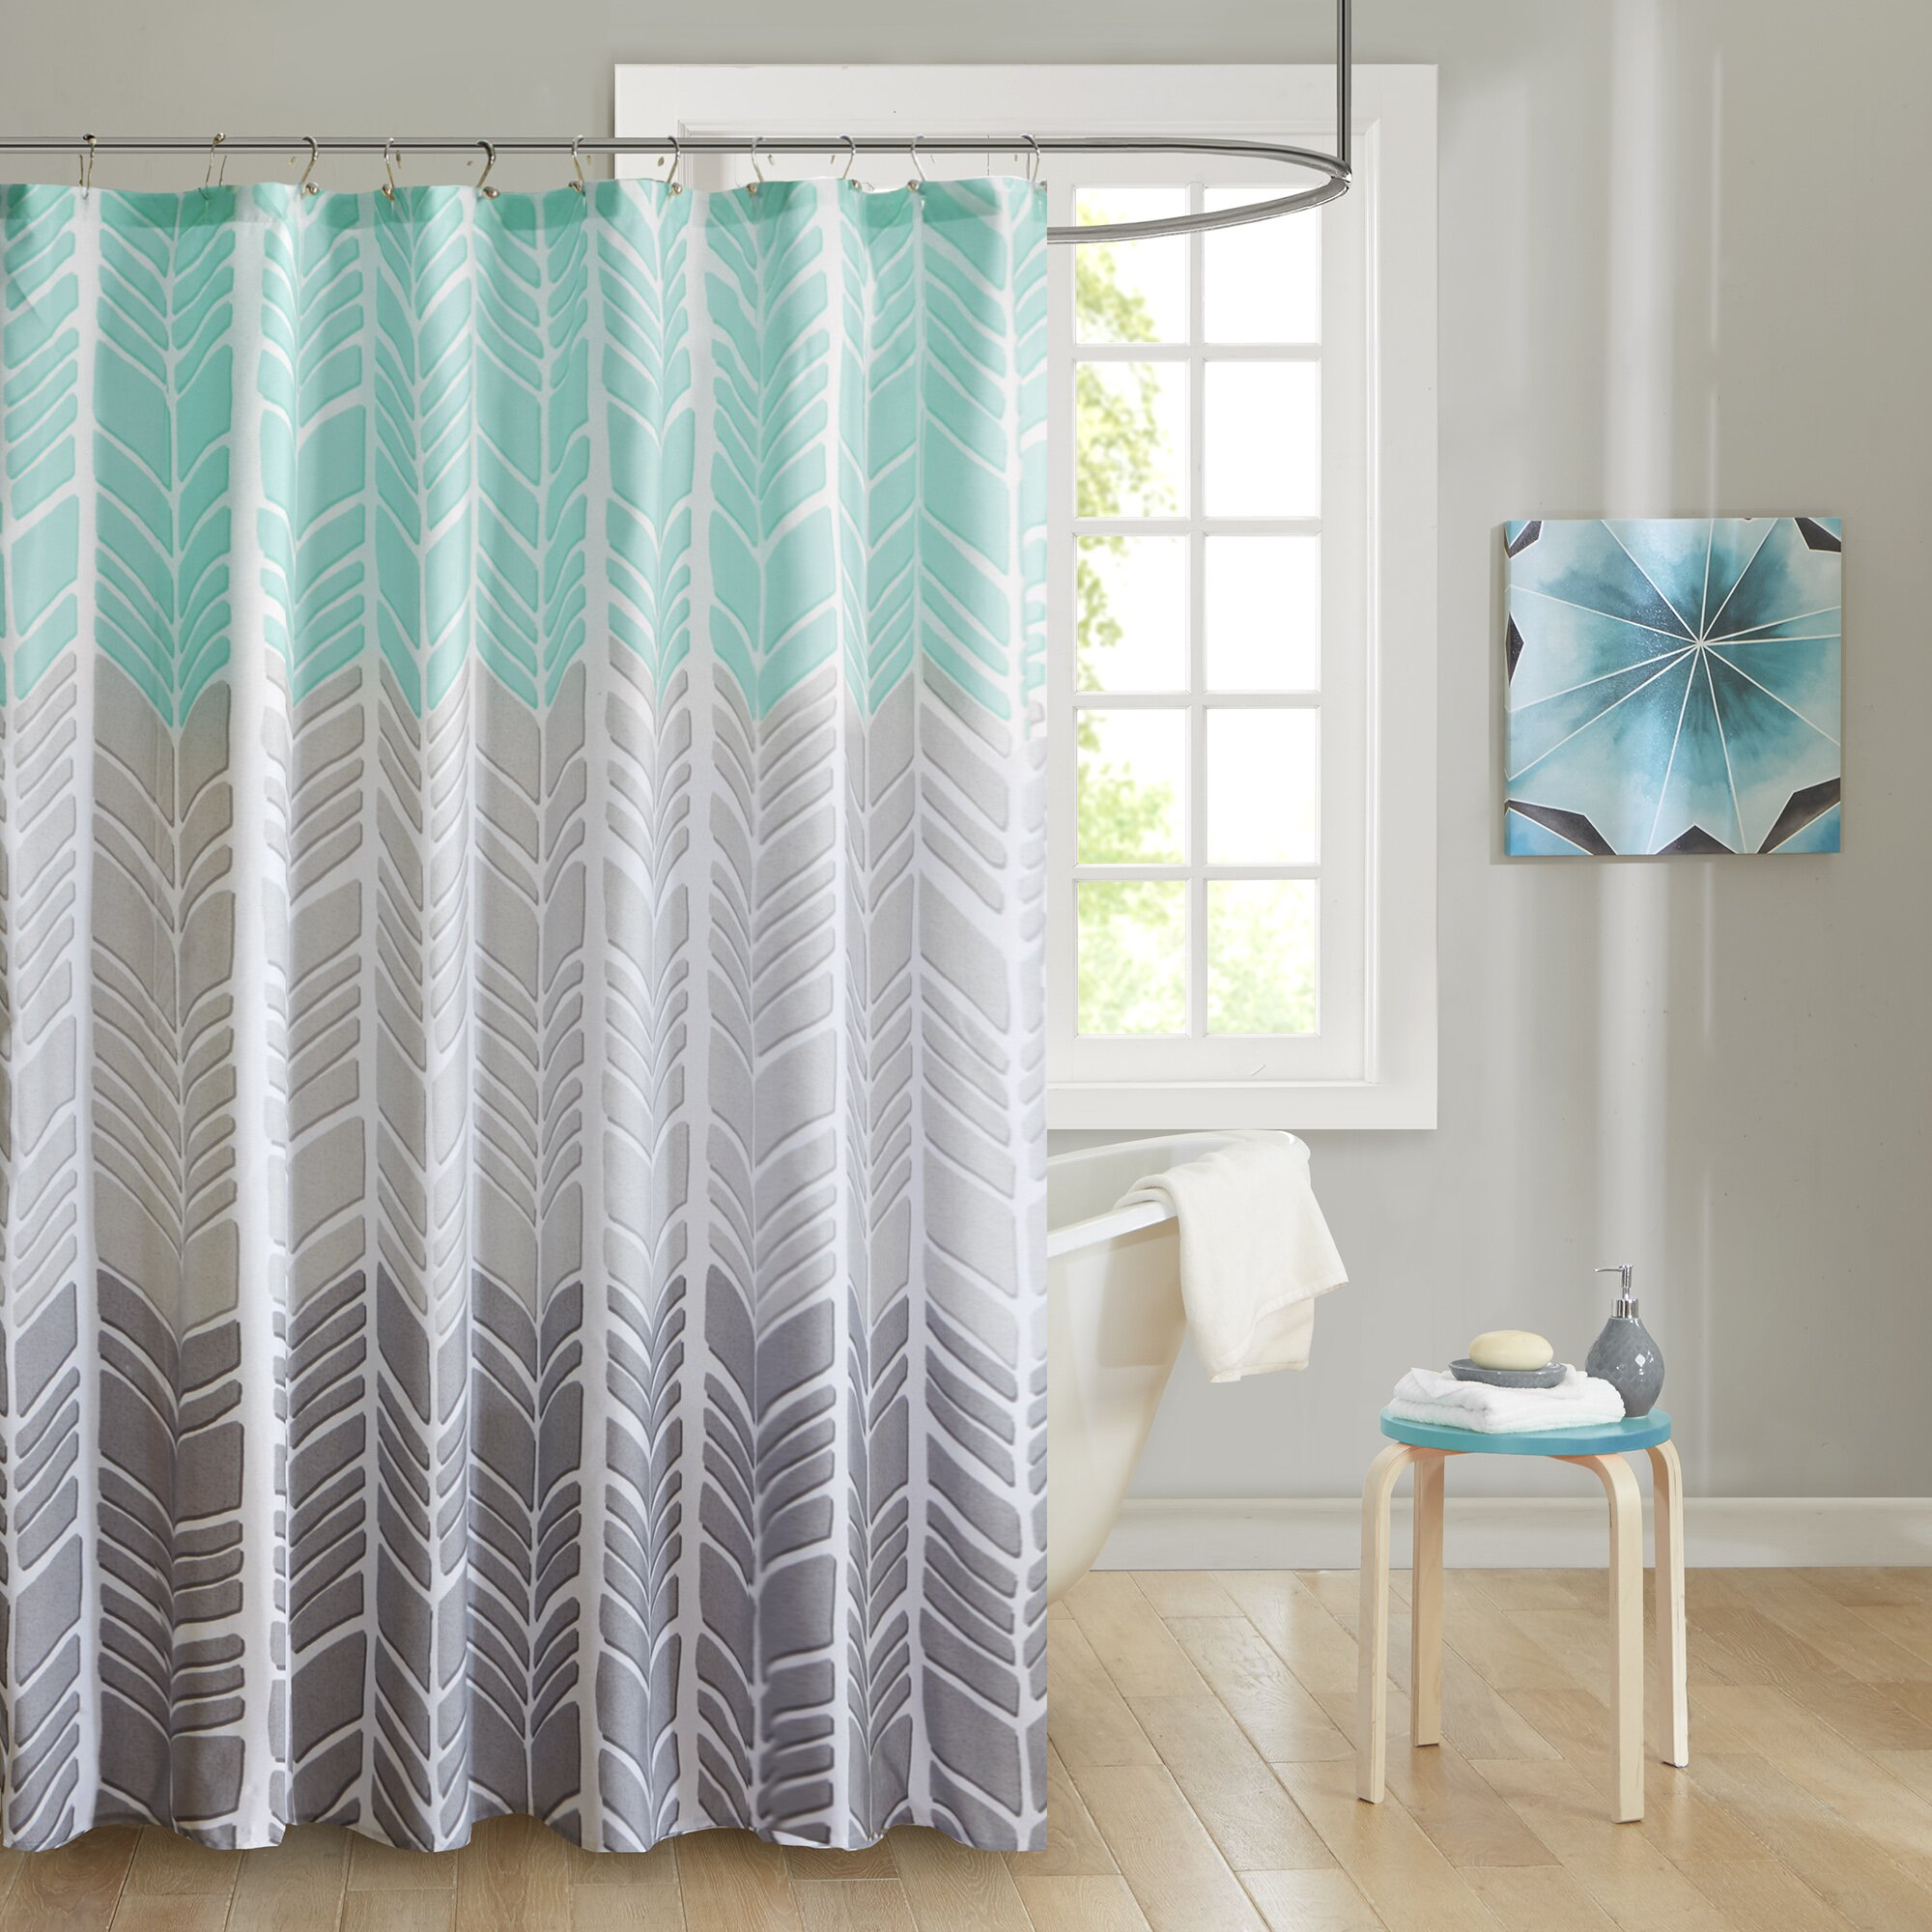 Shower Curtains Youll Love Wayfair - Clawfoot tub shower curtain size